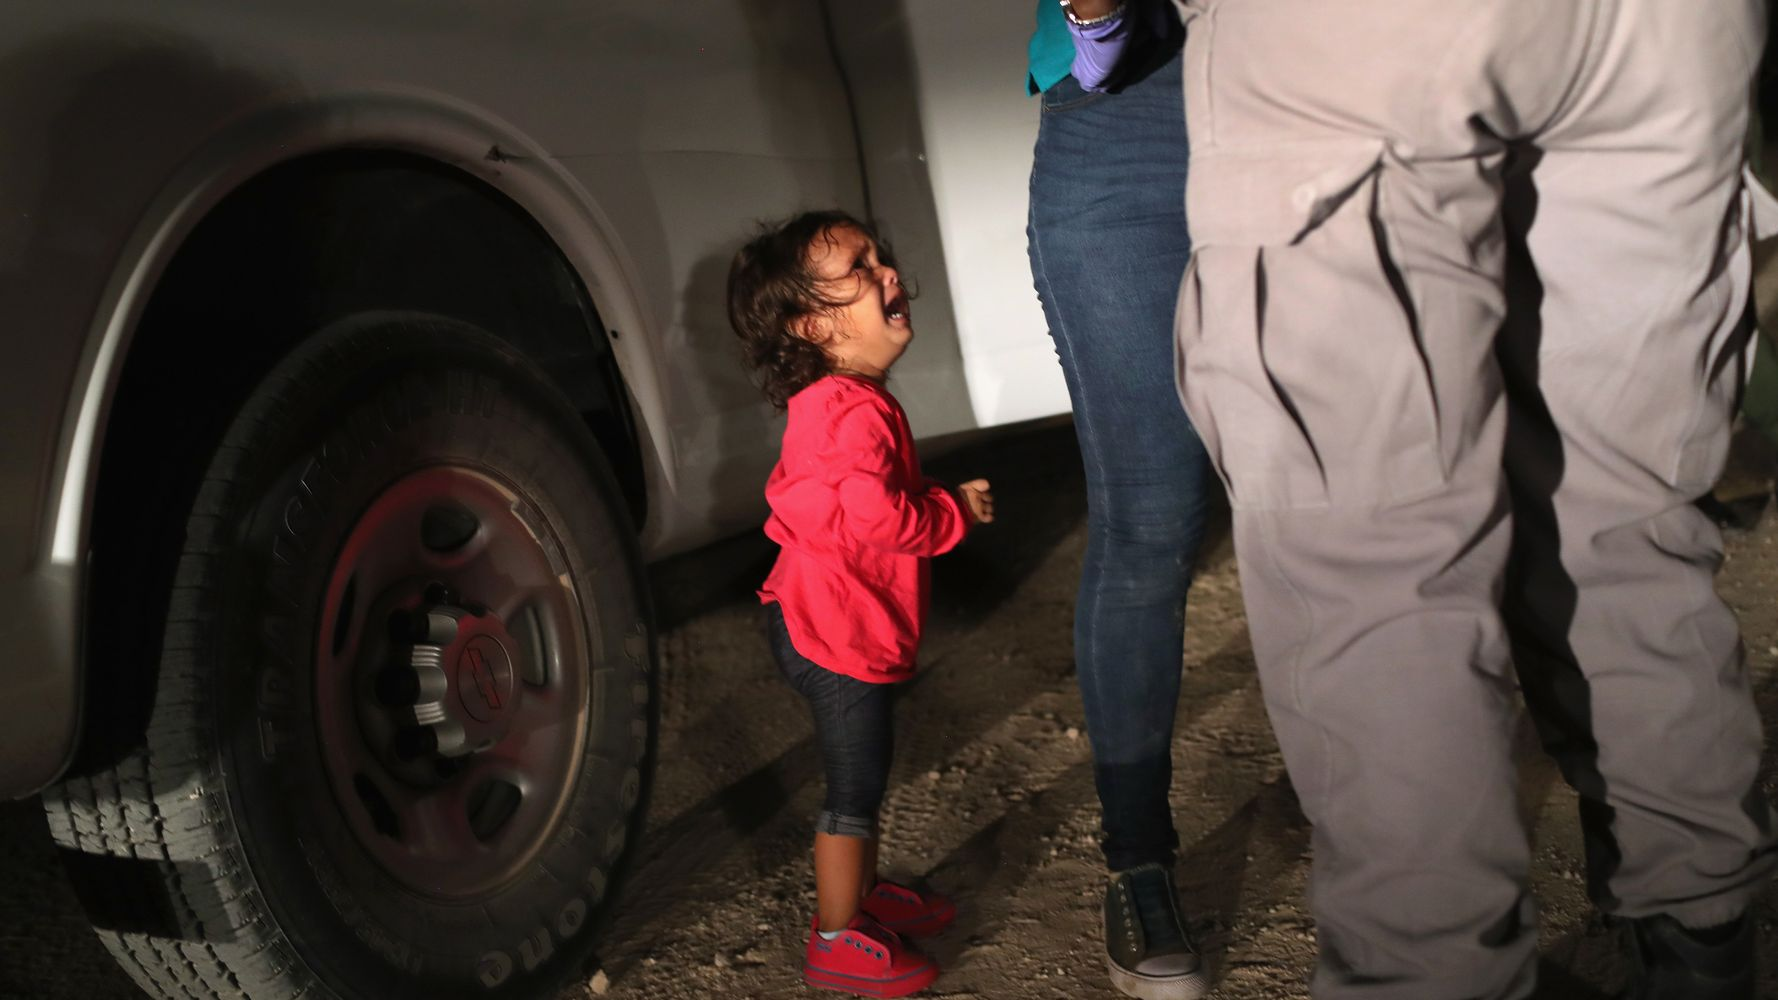 Children Separated From Parents At The Border Heard In